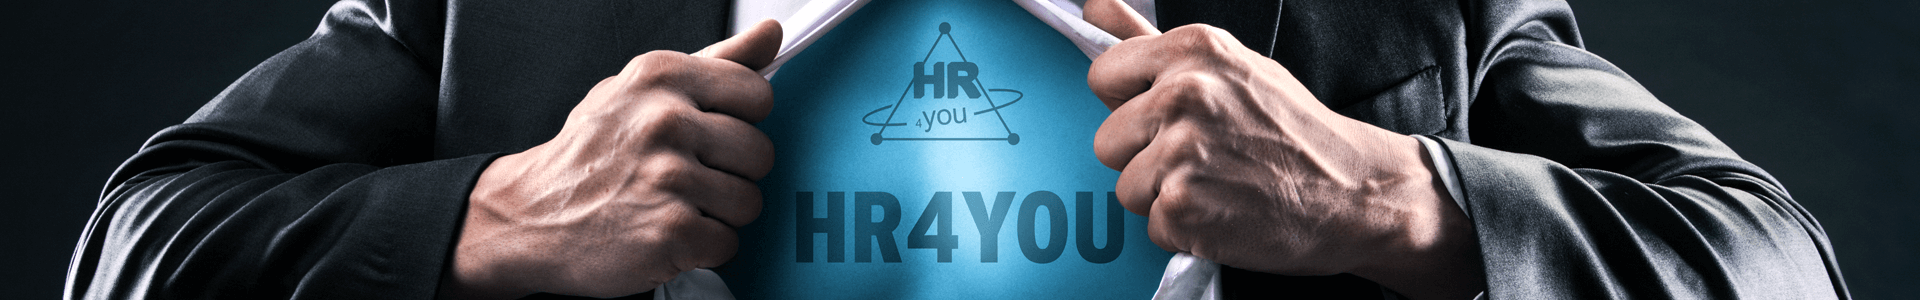 hr4you digitale personalakte hcm